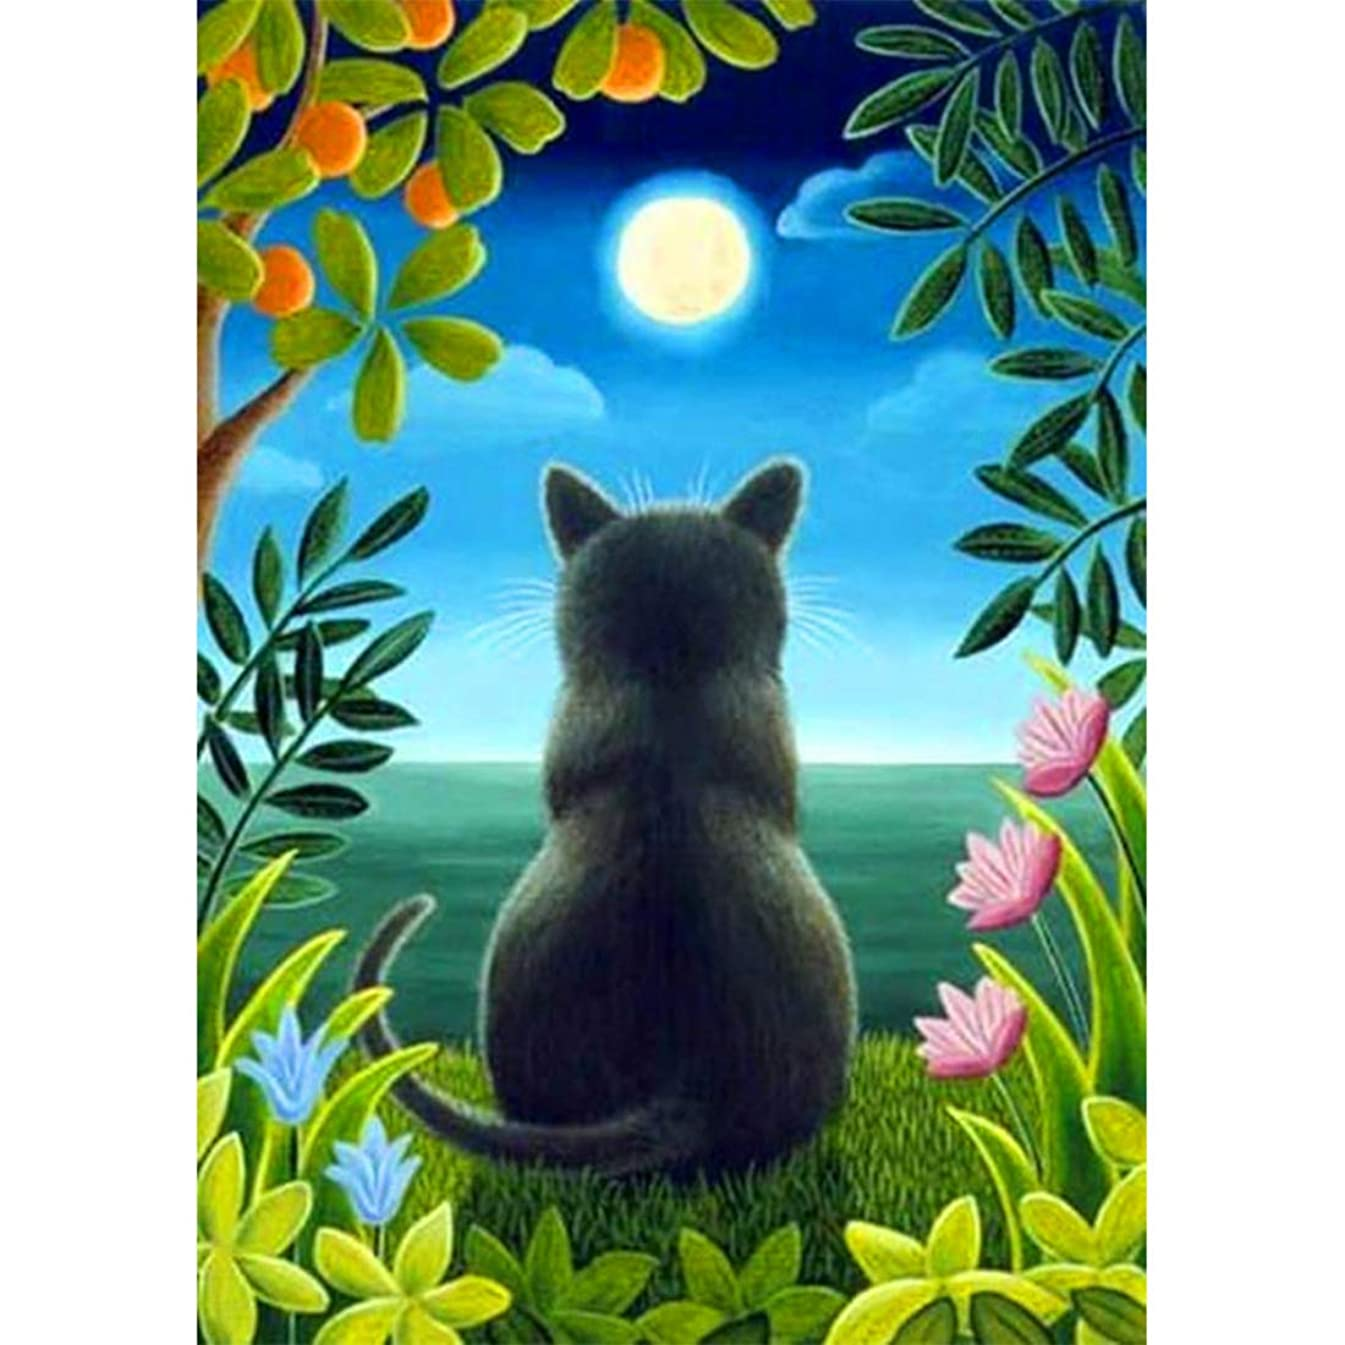 Full Drill DIY Square Diamond Painting by Number Kit, Black Cat Moon Embroidery Cross Stitch Picture Supplies Arts Craft Wall Sticker Decor